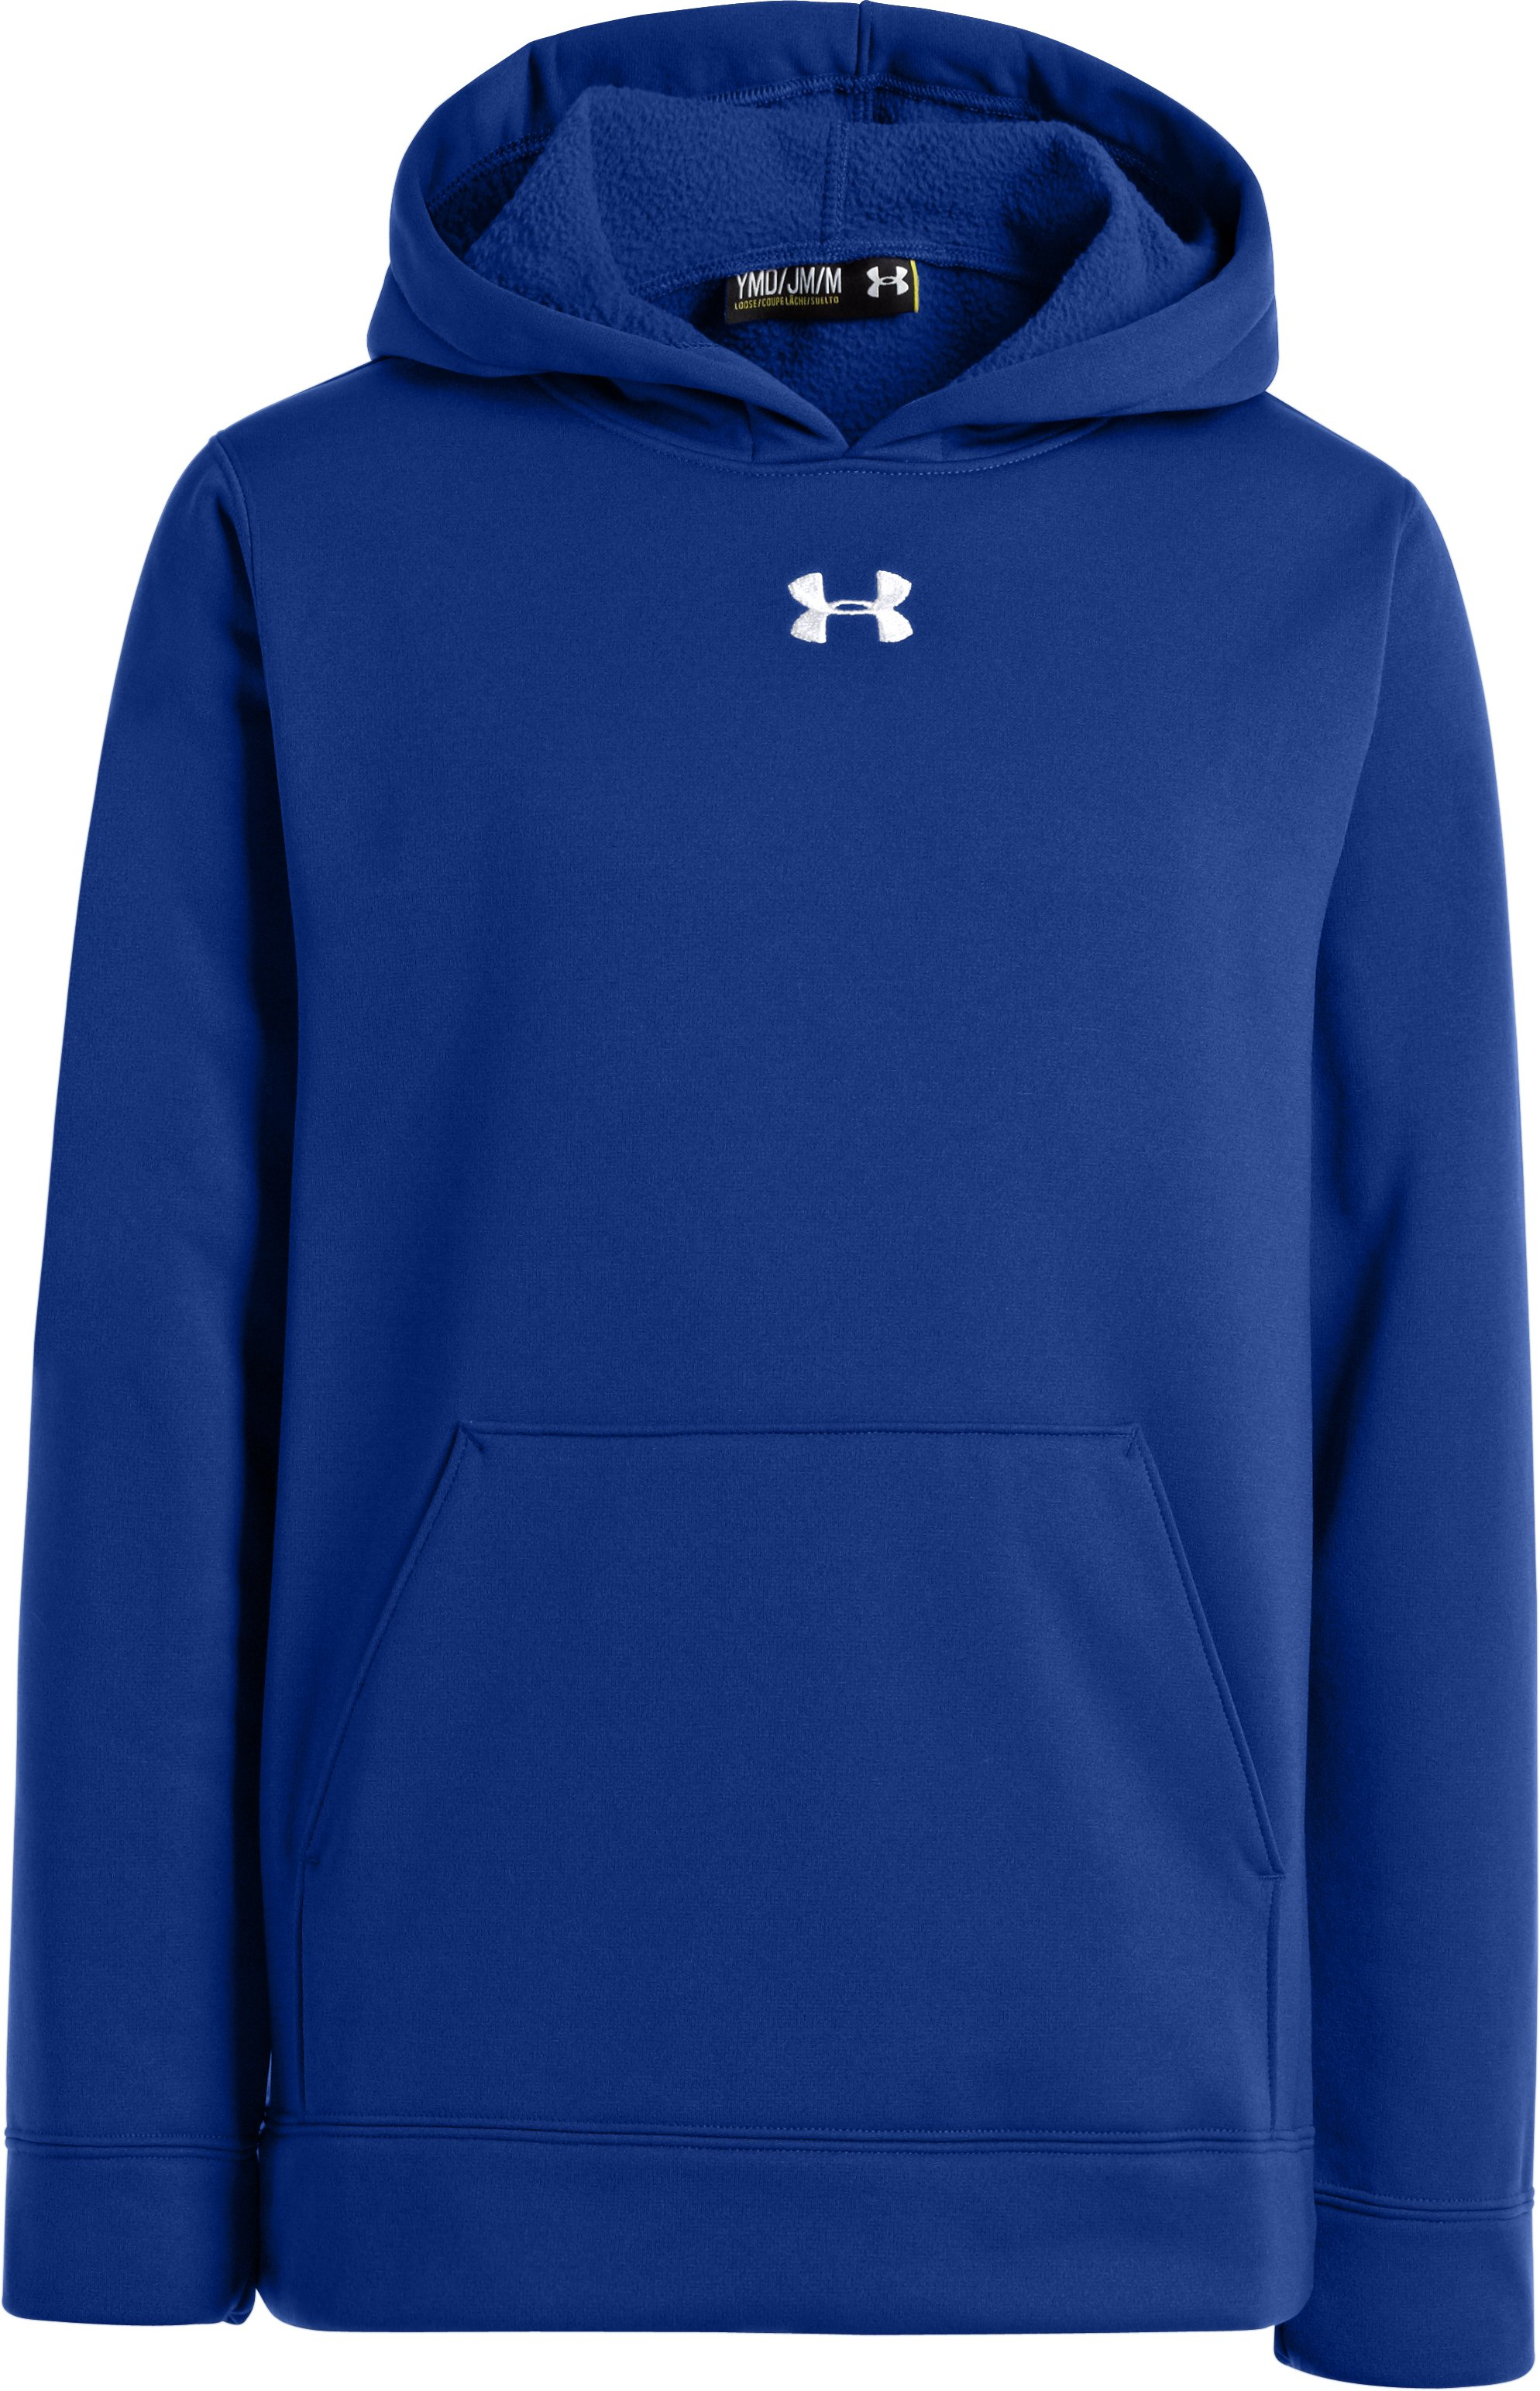 Boys' Armour® Fleece Storm Team Hoodie, Royal